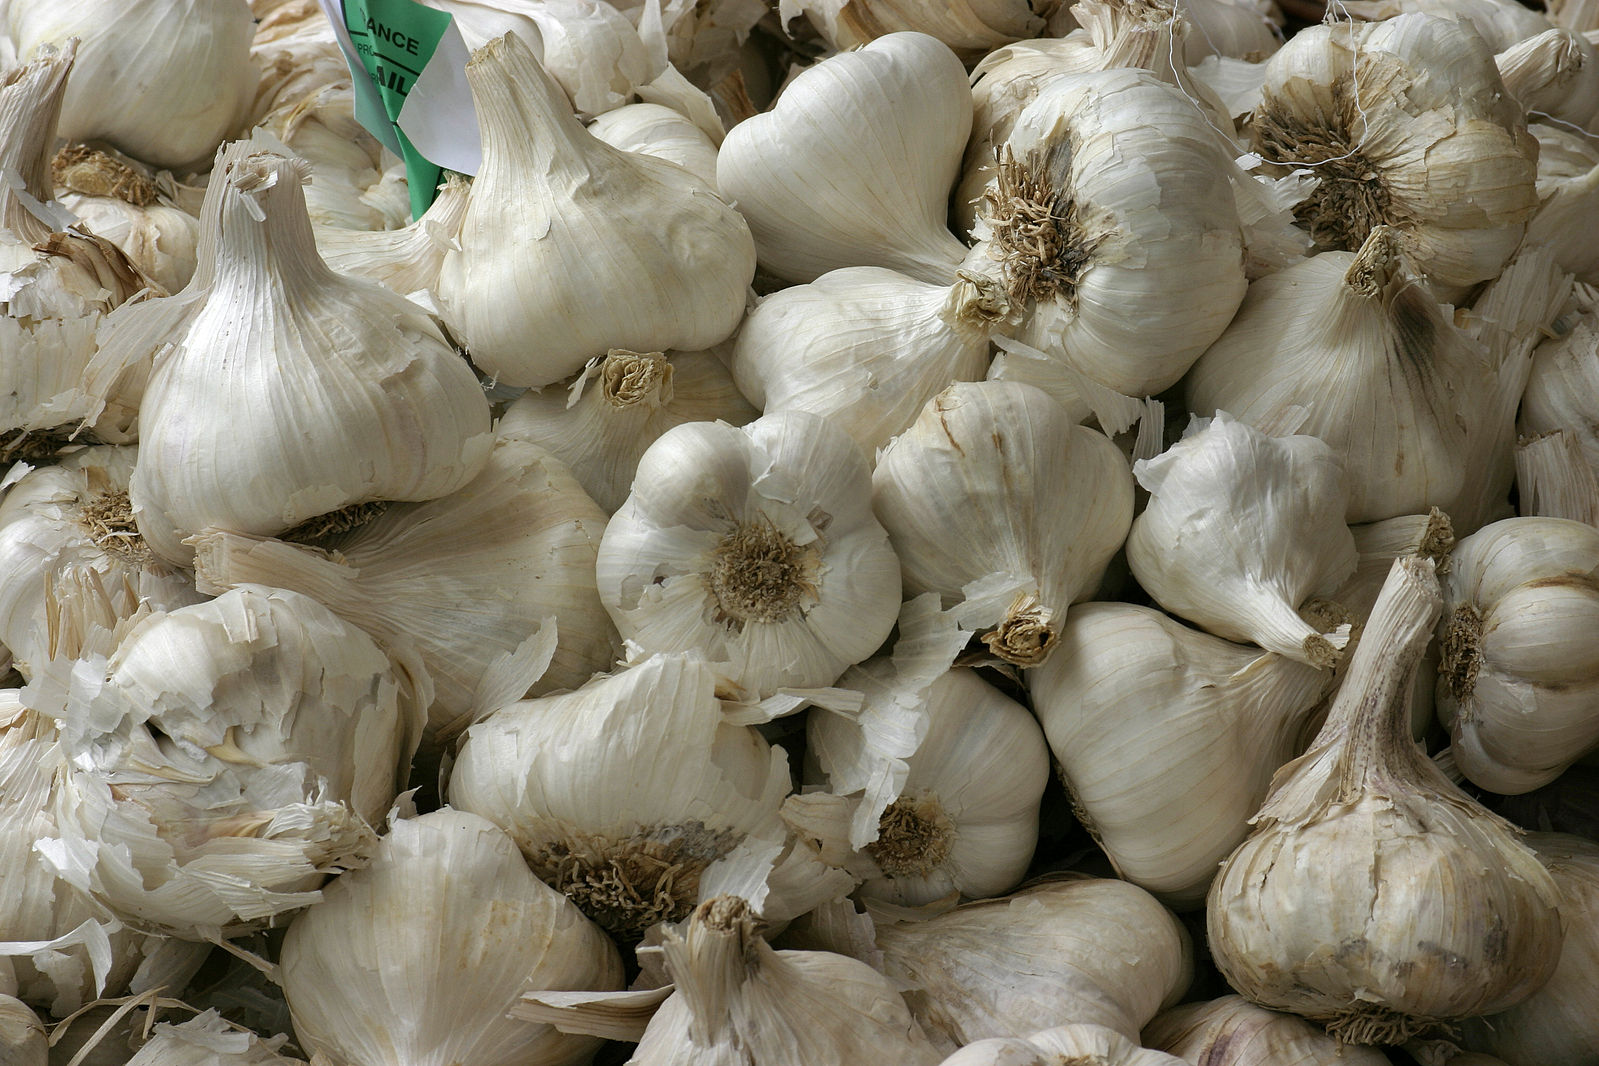 garlic allium sativum as a major These plants, garlic (allium sativum) with its major ingredients, s-allylcysteine and s-allylmercapto-l-cysteine organosulfur compounds (oscs), have long been known to have medicinal.